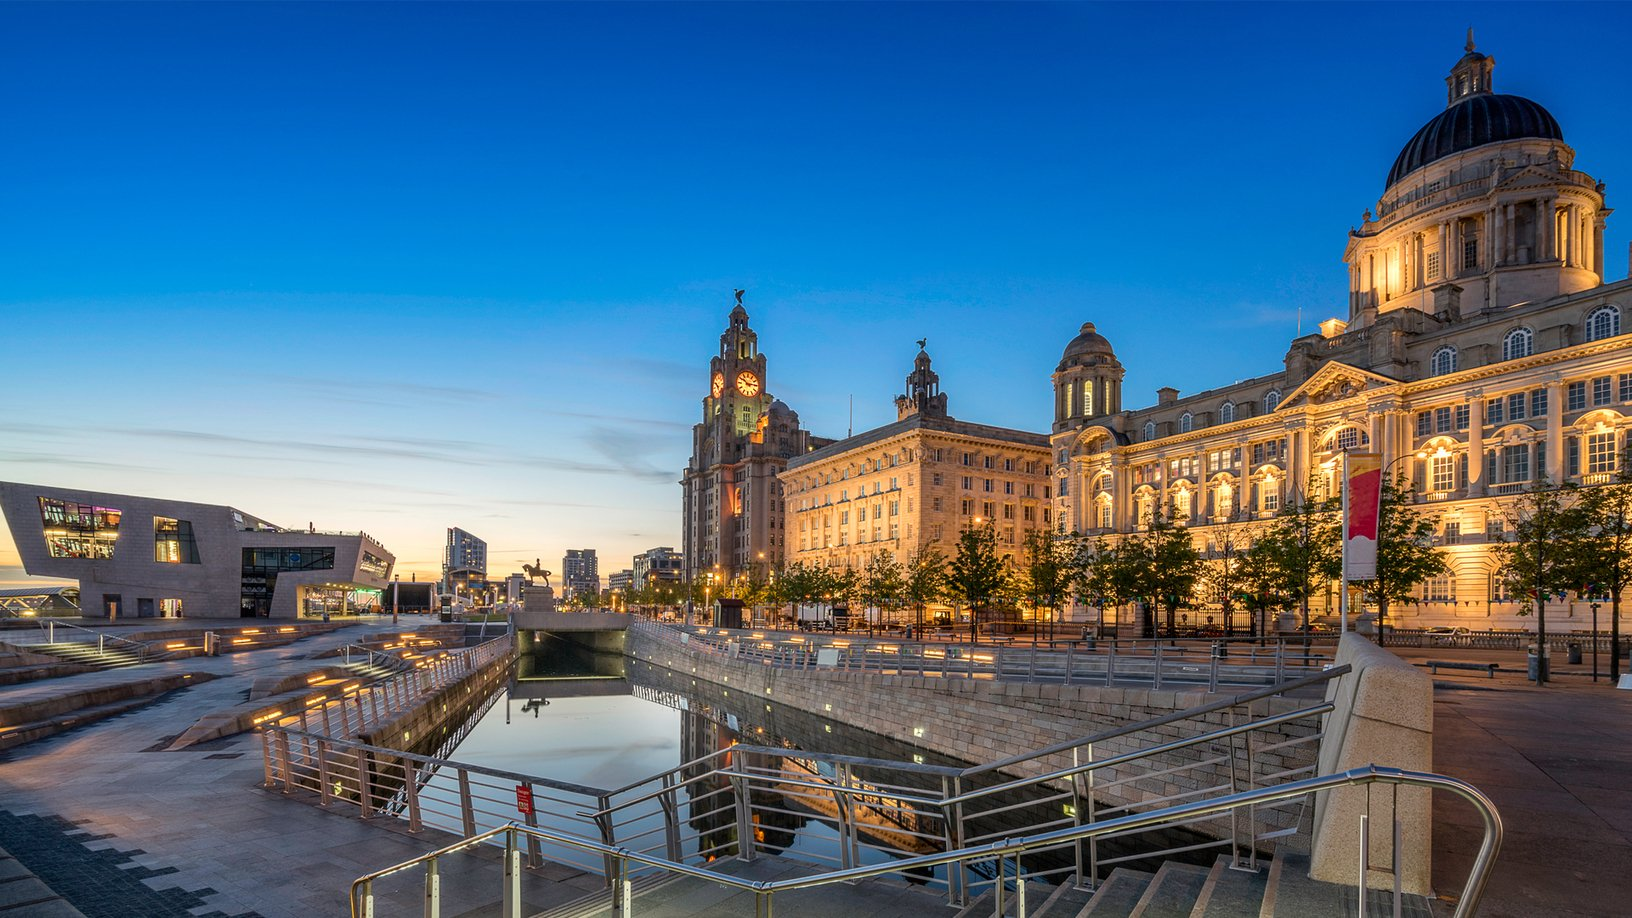 , Liverpool green deal to boost economy, sustainability, The Circular Economy, The Circular Economy